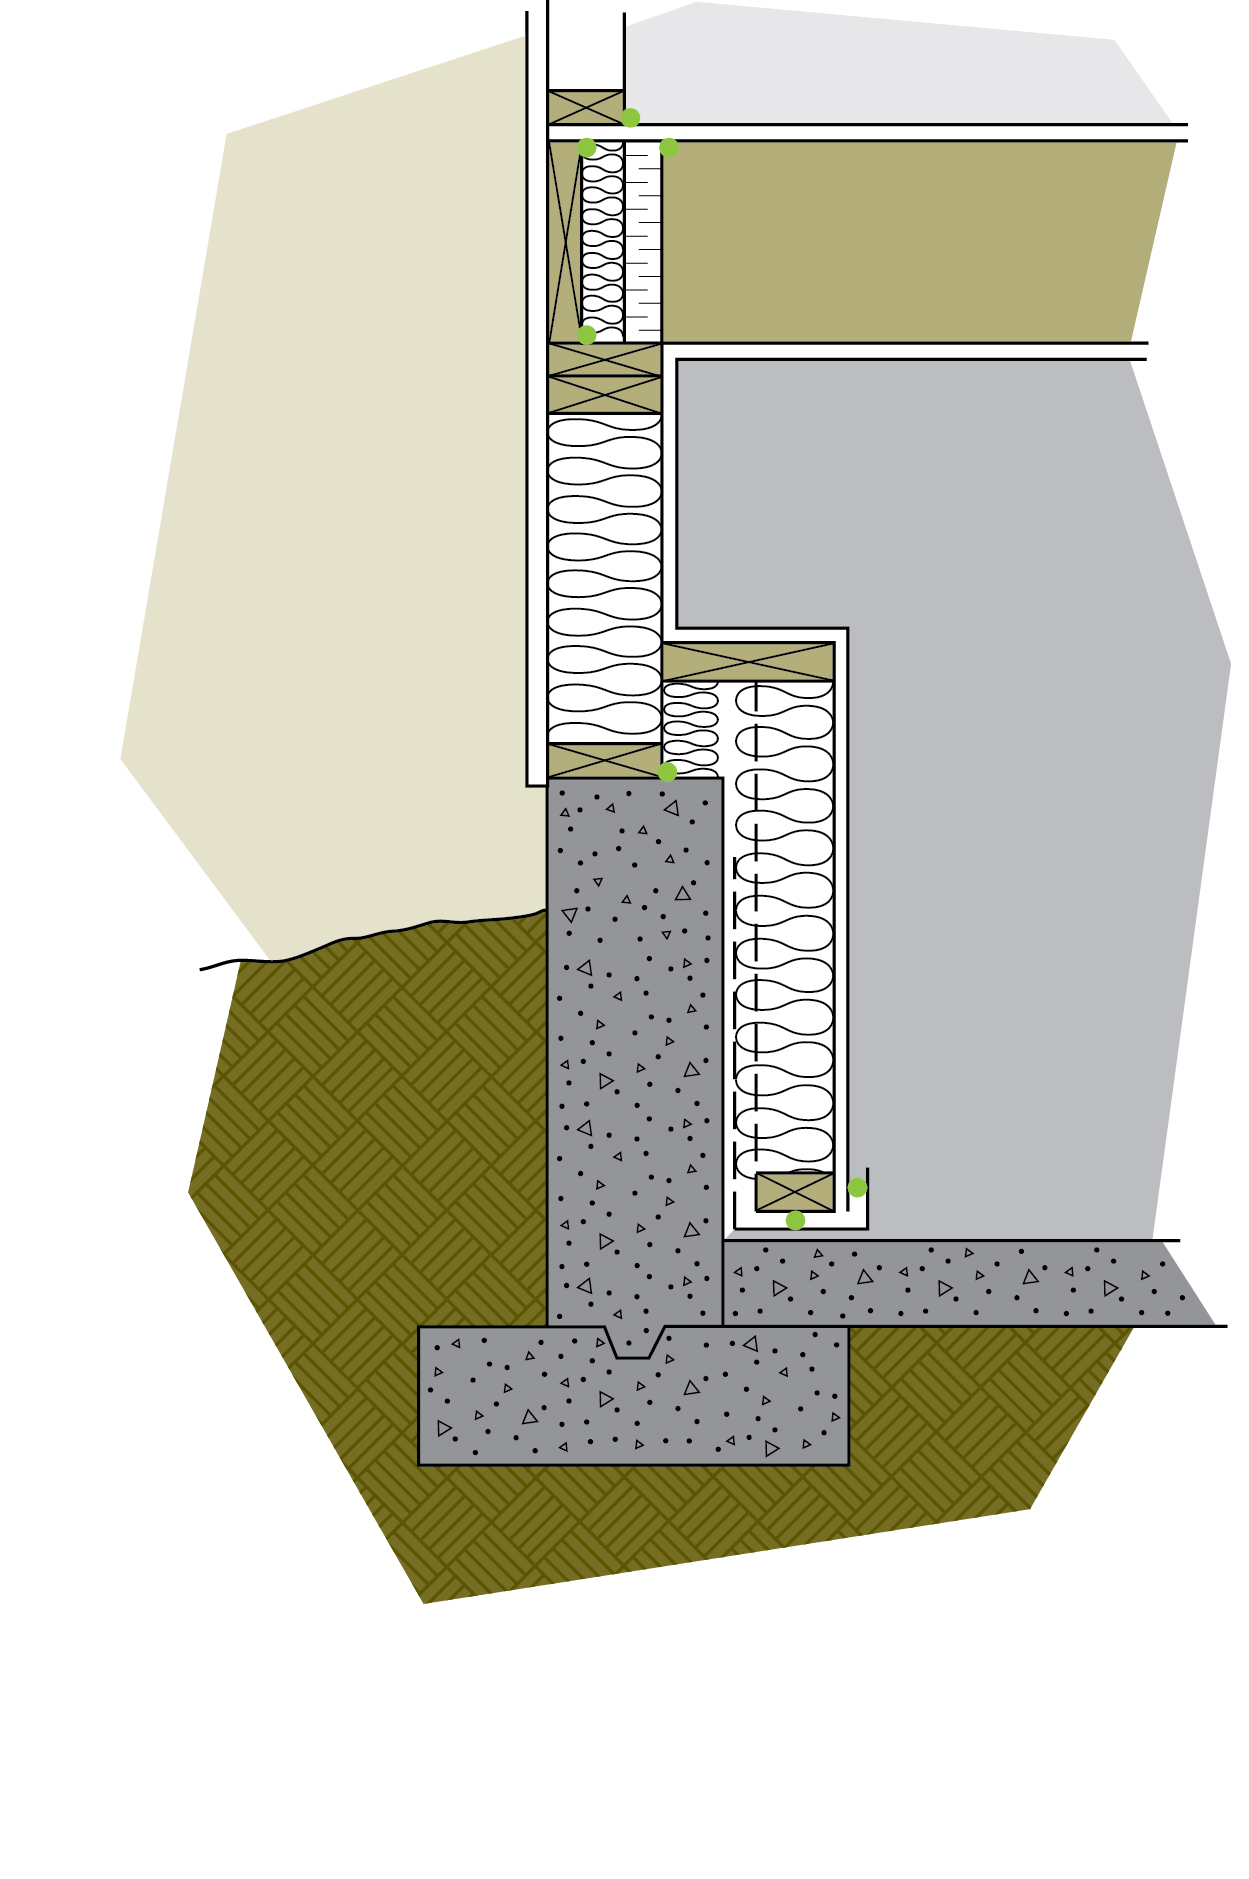 Figure 6-20 Insulating a pony wall is a two-step process that creates a small ledge